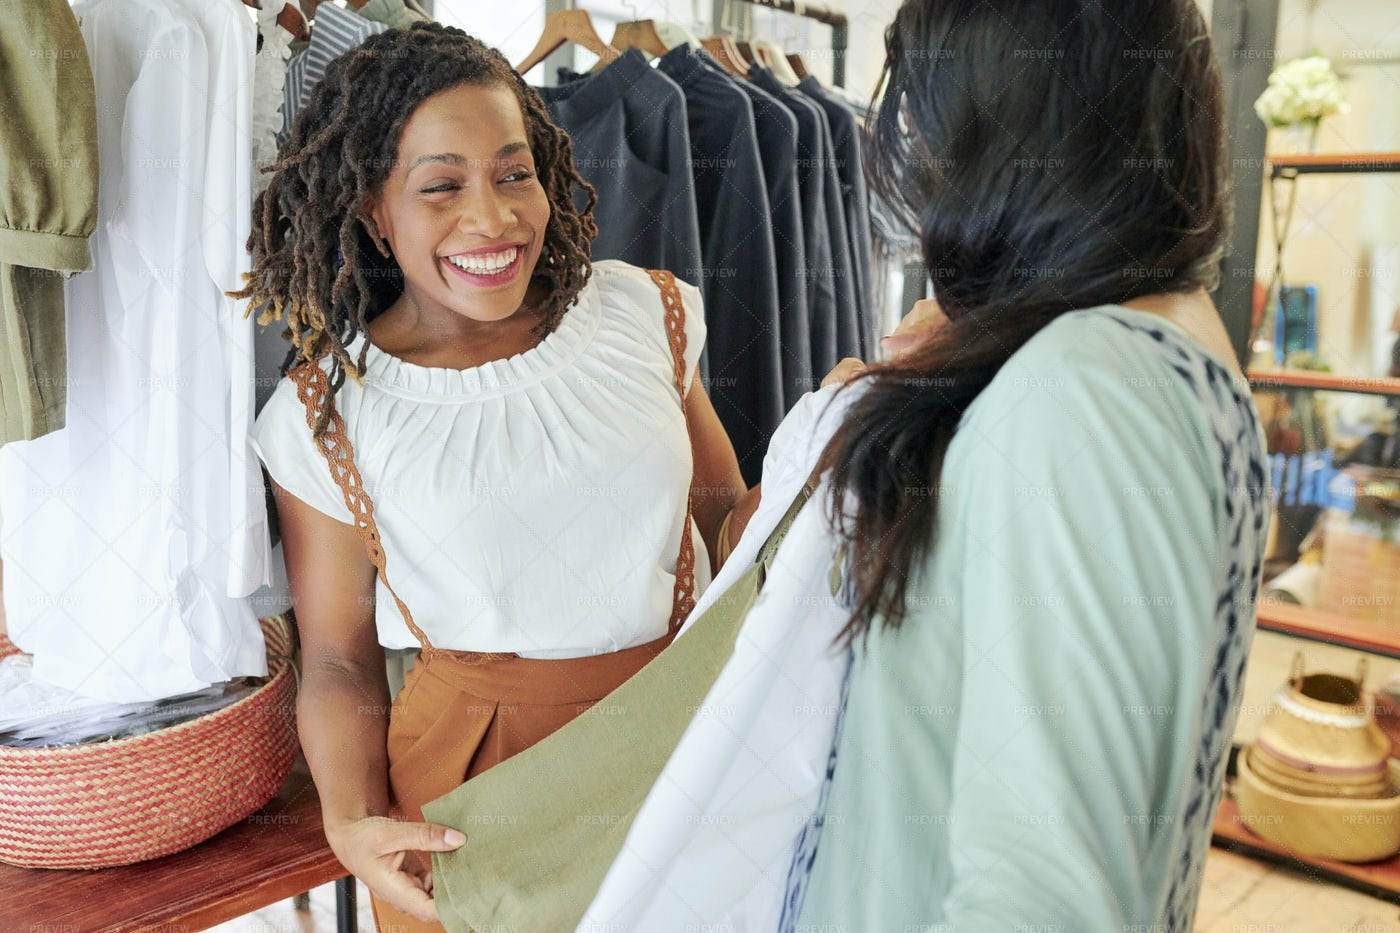 Happy Youg Woman Shopping With Friend: Stock Photos